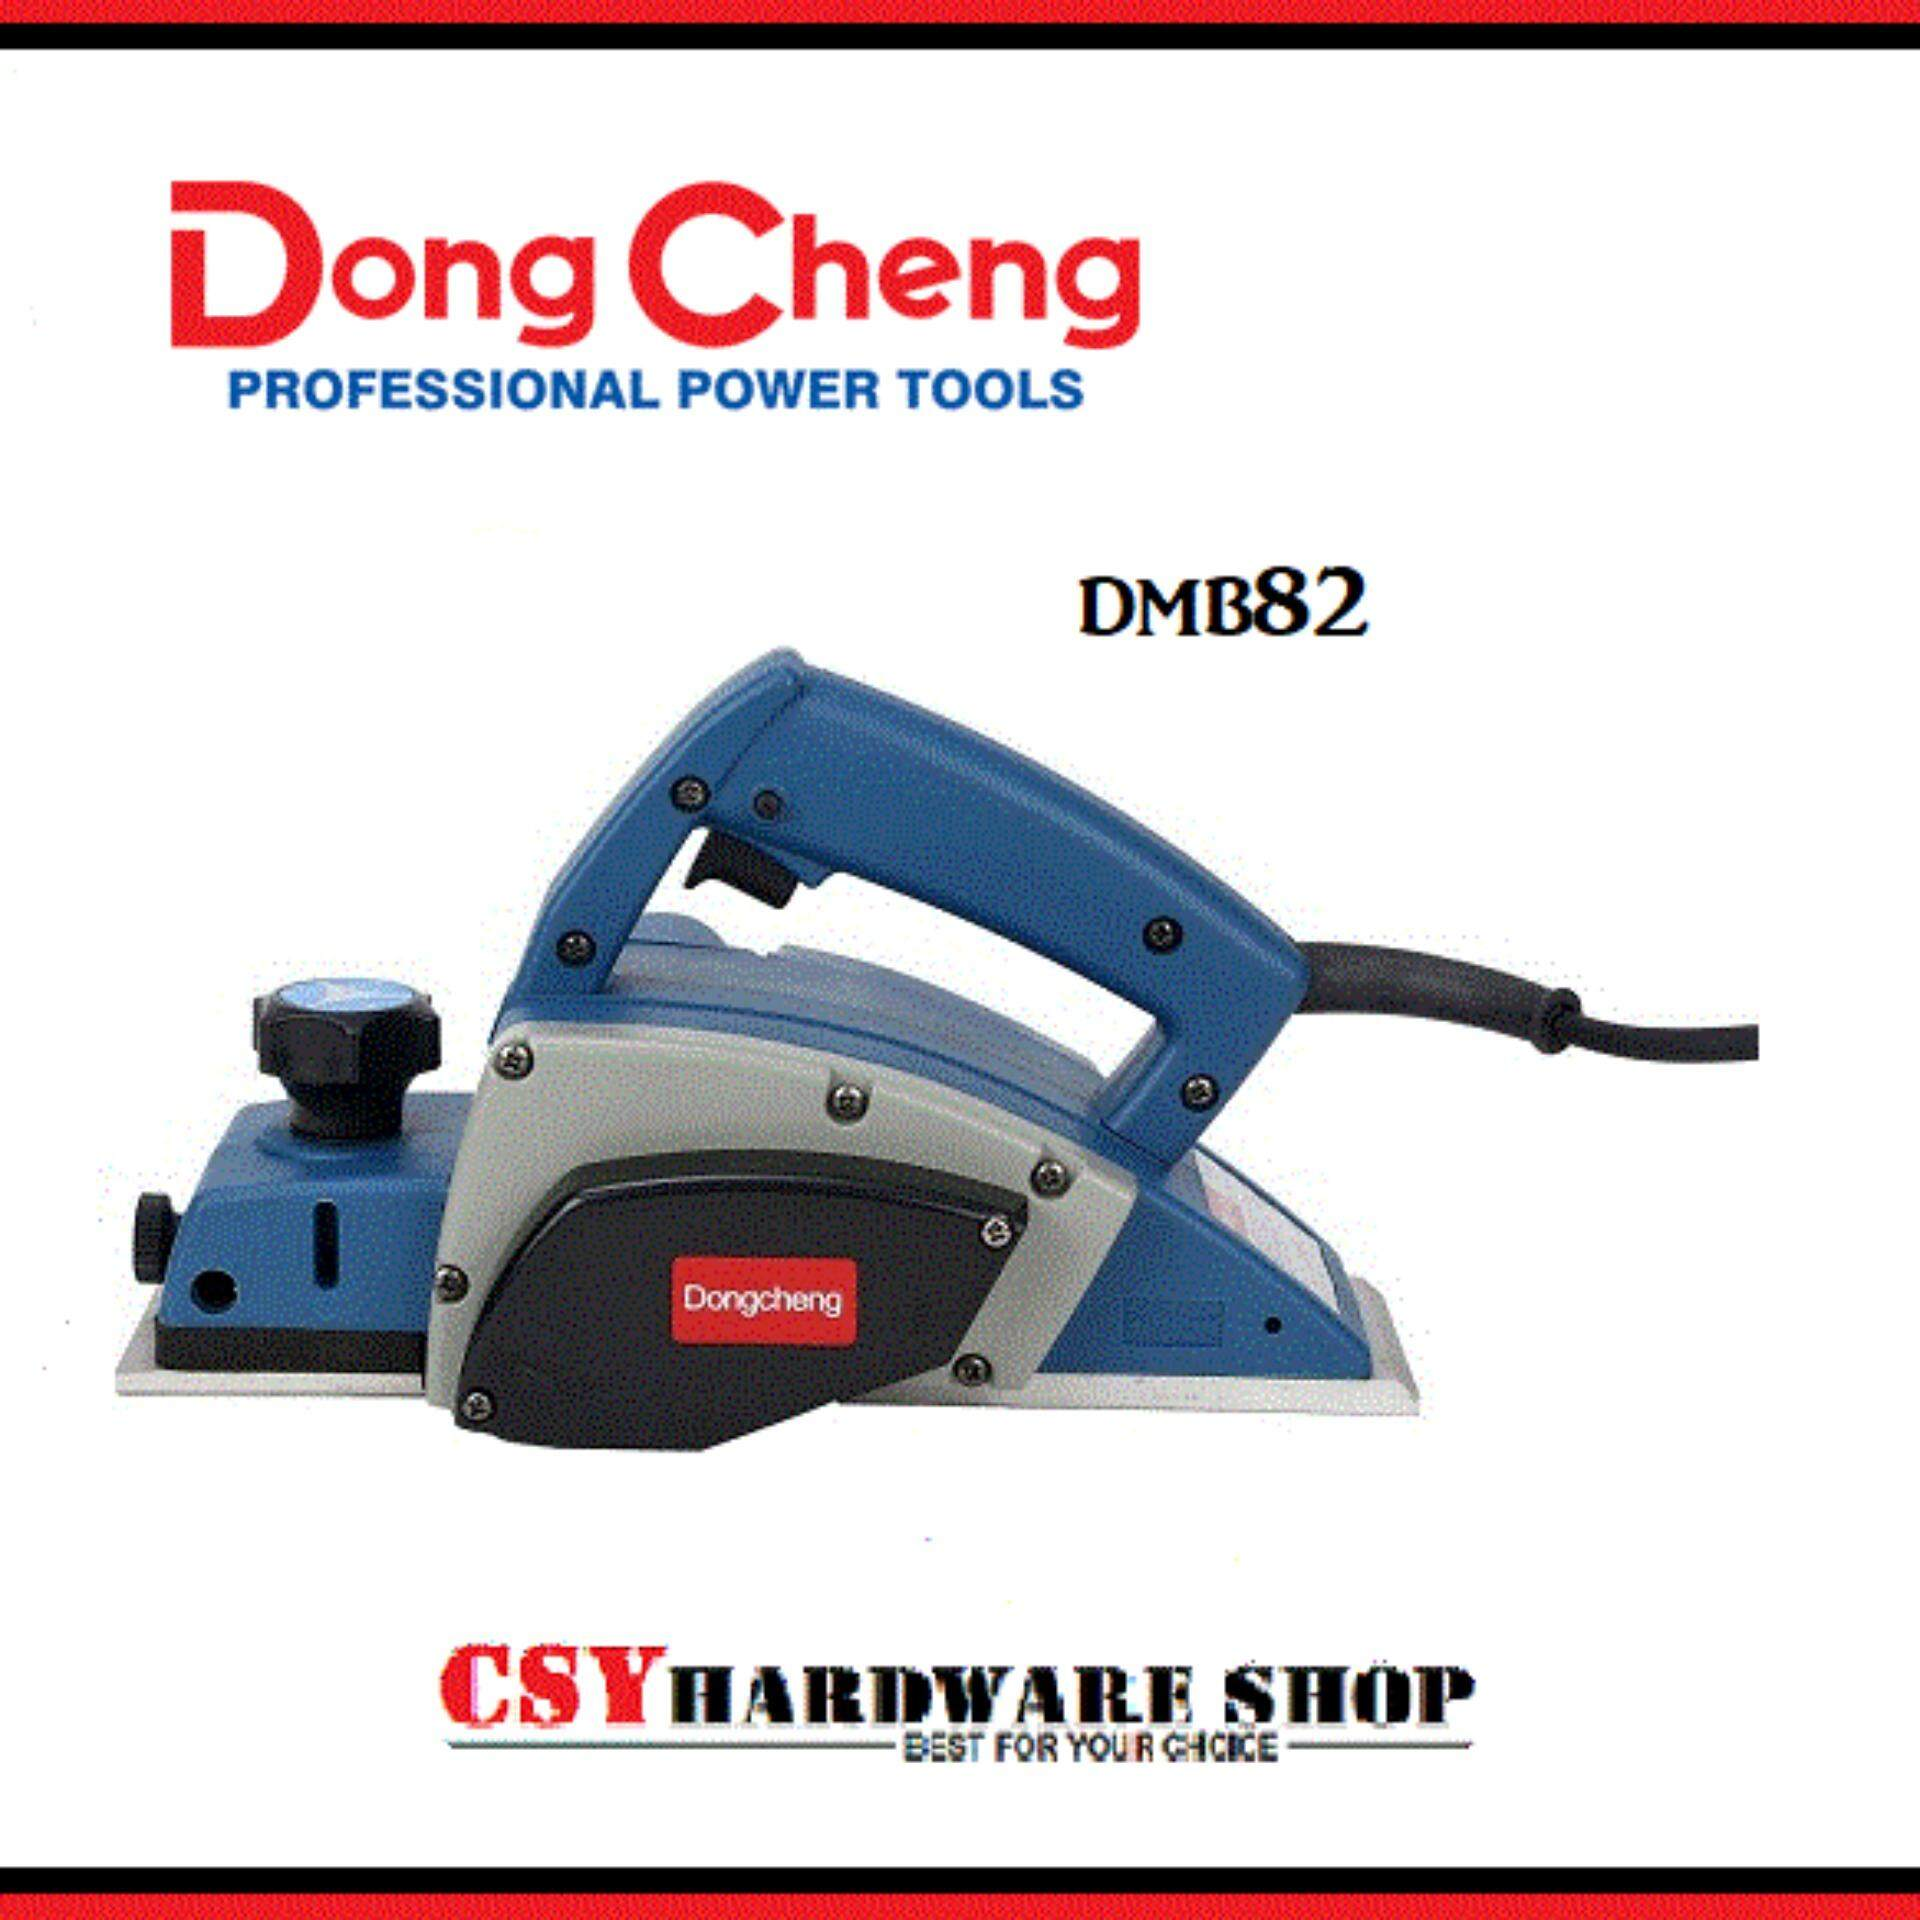 DONG CHENG ELECTRIC PLANNER DMB82